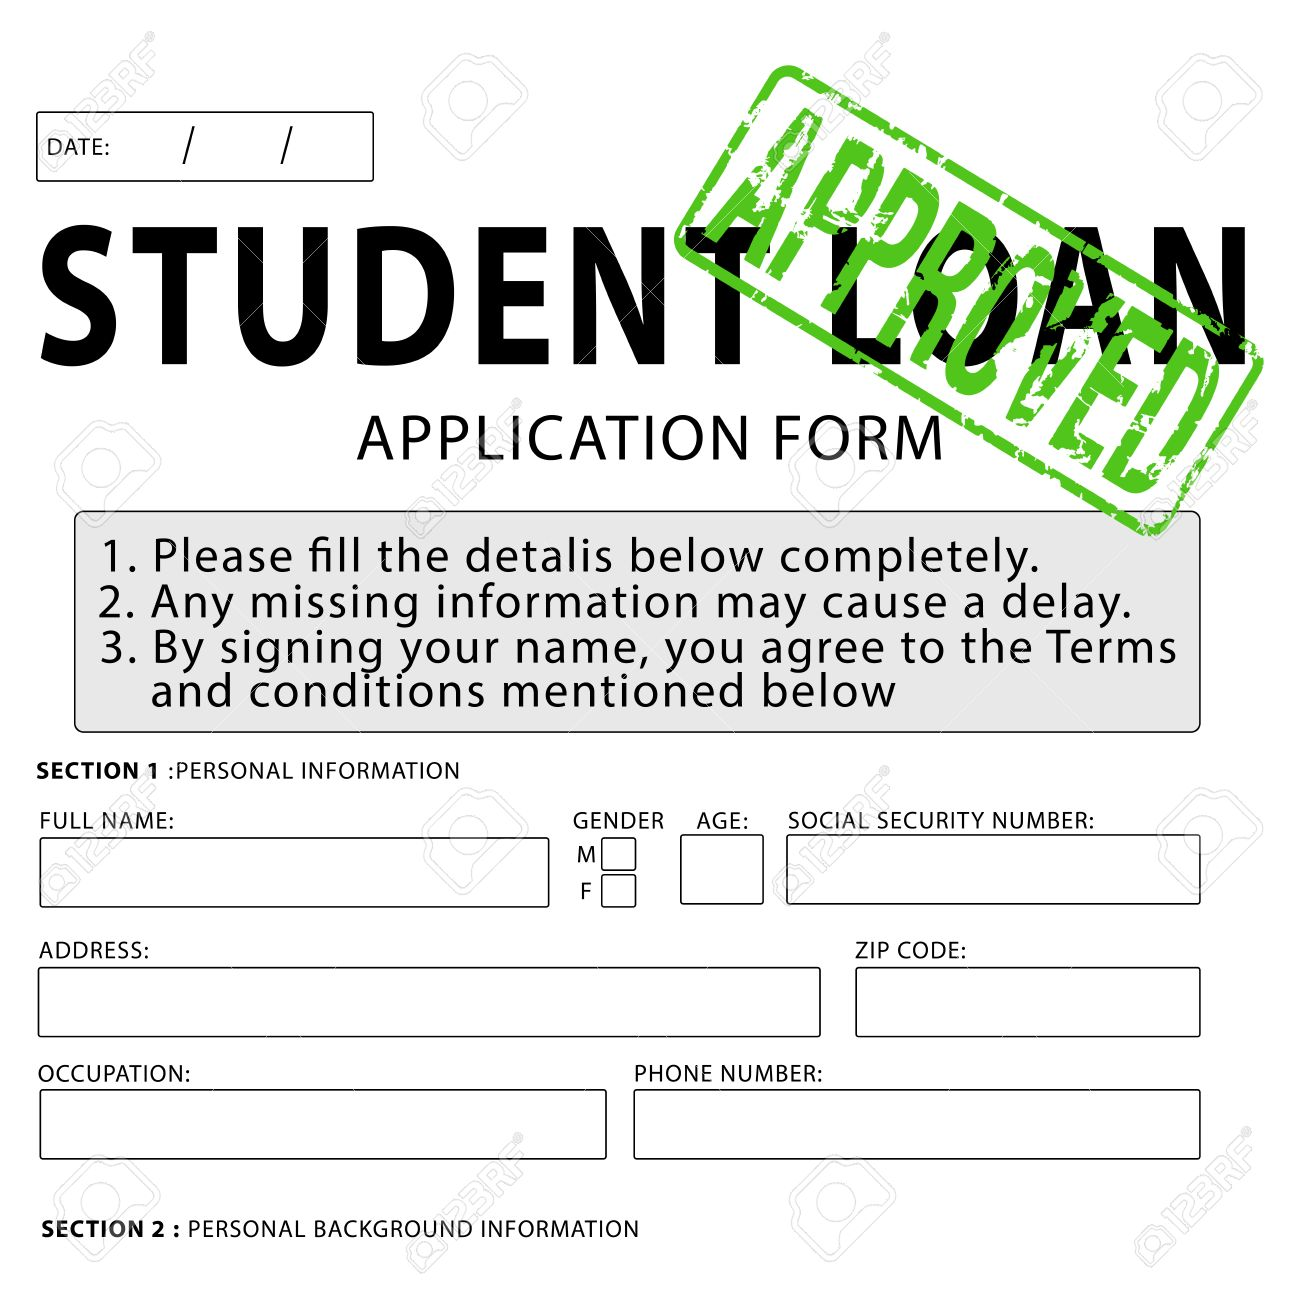 Marvelous Student Loan Application Form With Green Approved Rubber Stamp Stock Photo    38116674